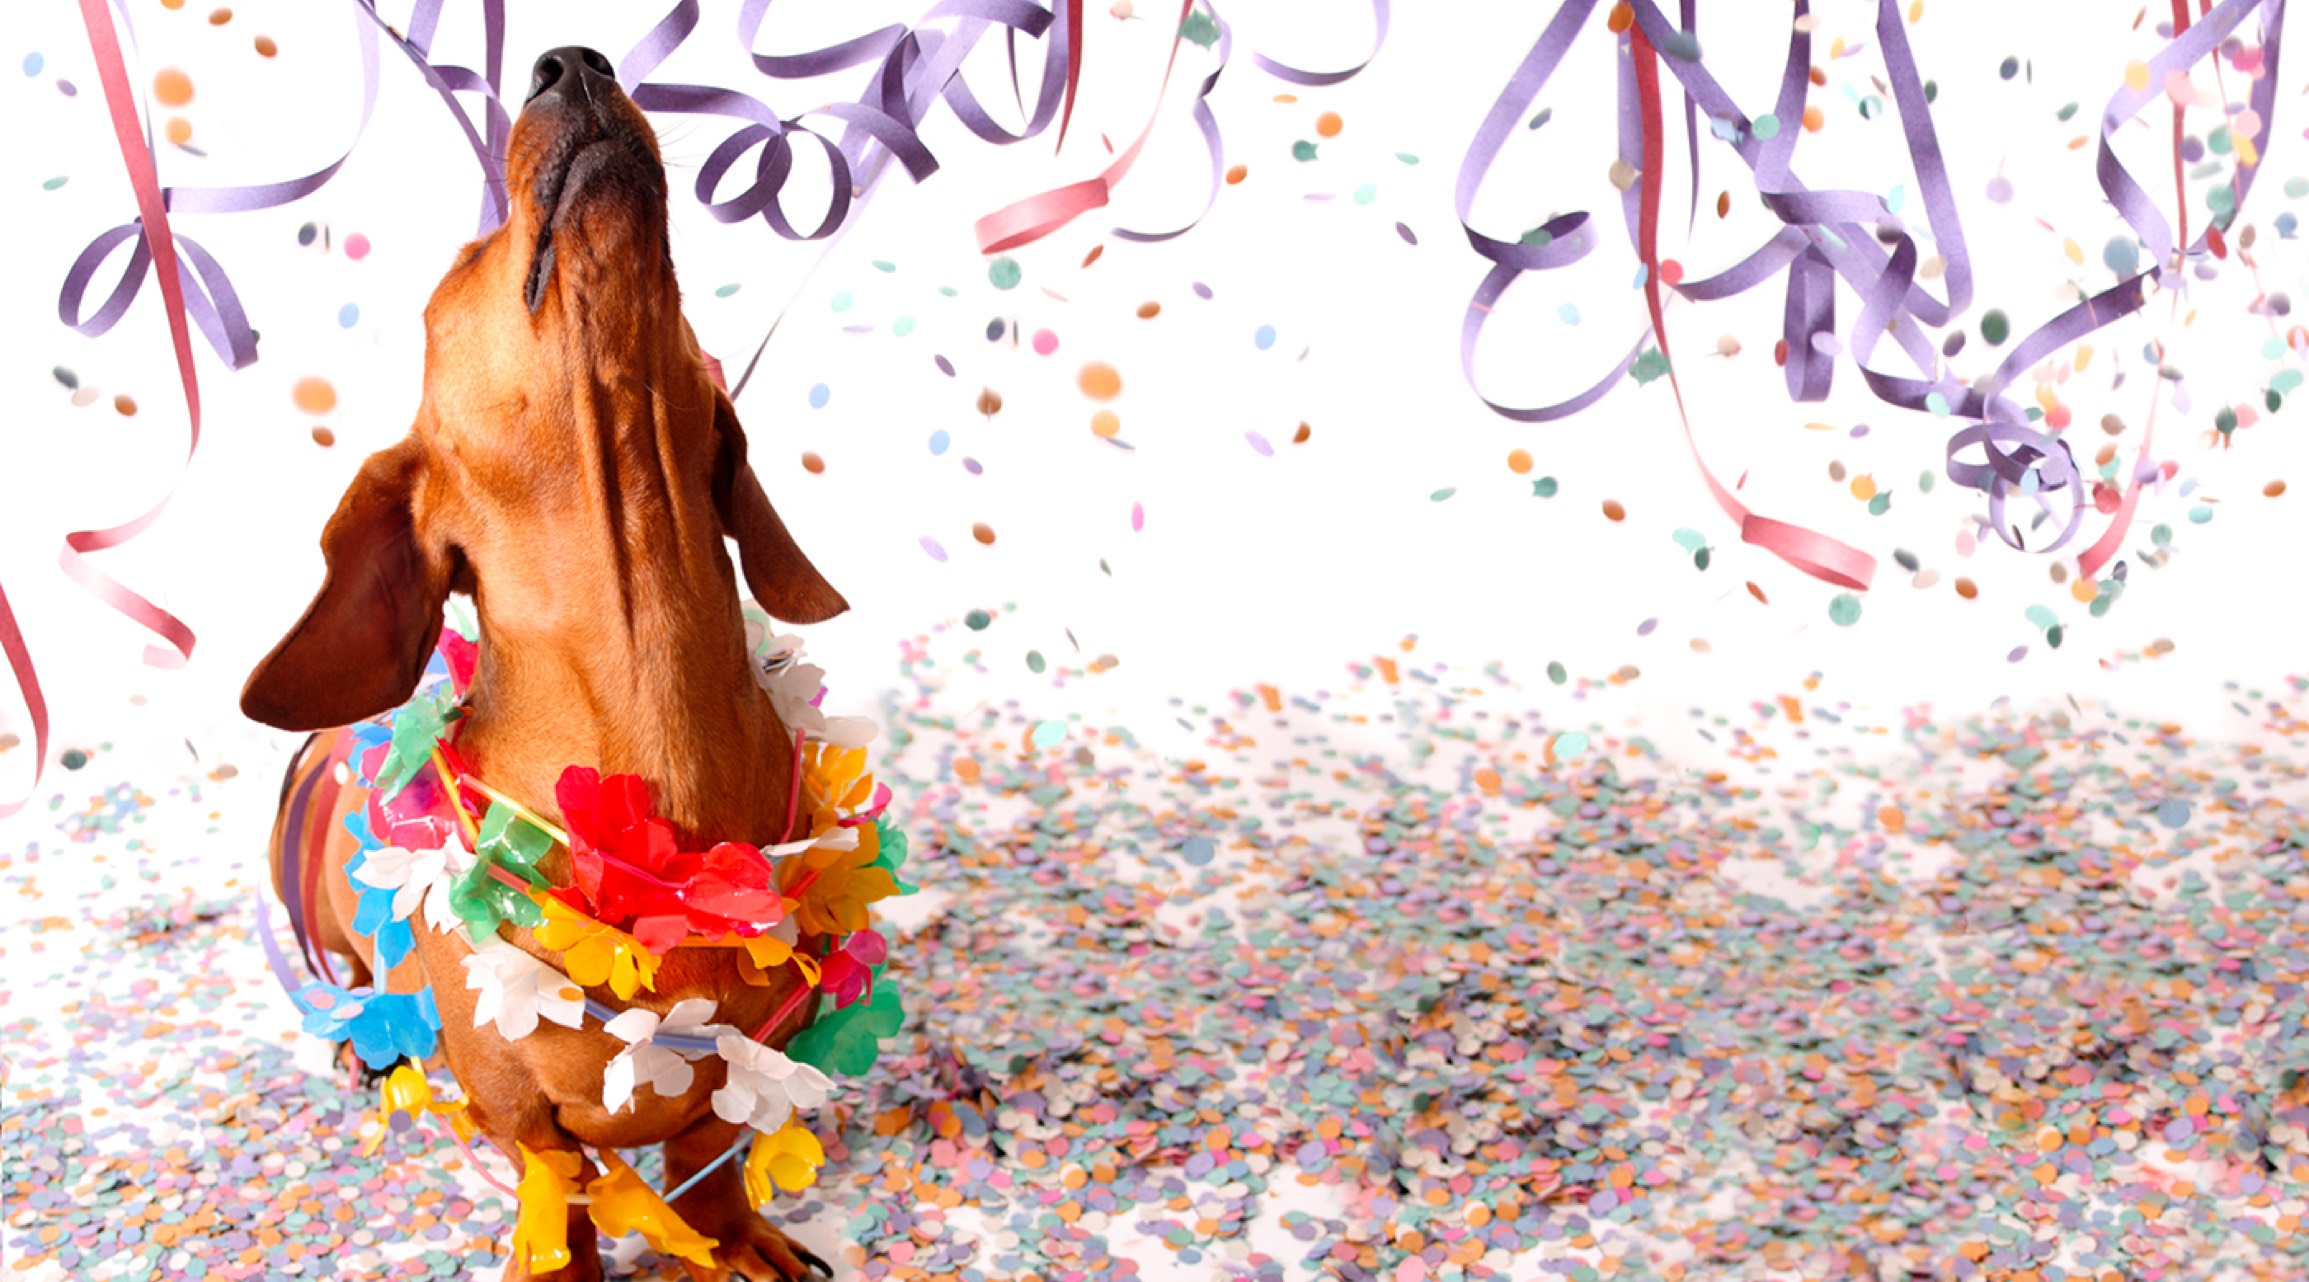 dachsund wearing a colorful paper garland, surrounded by colorful confetti